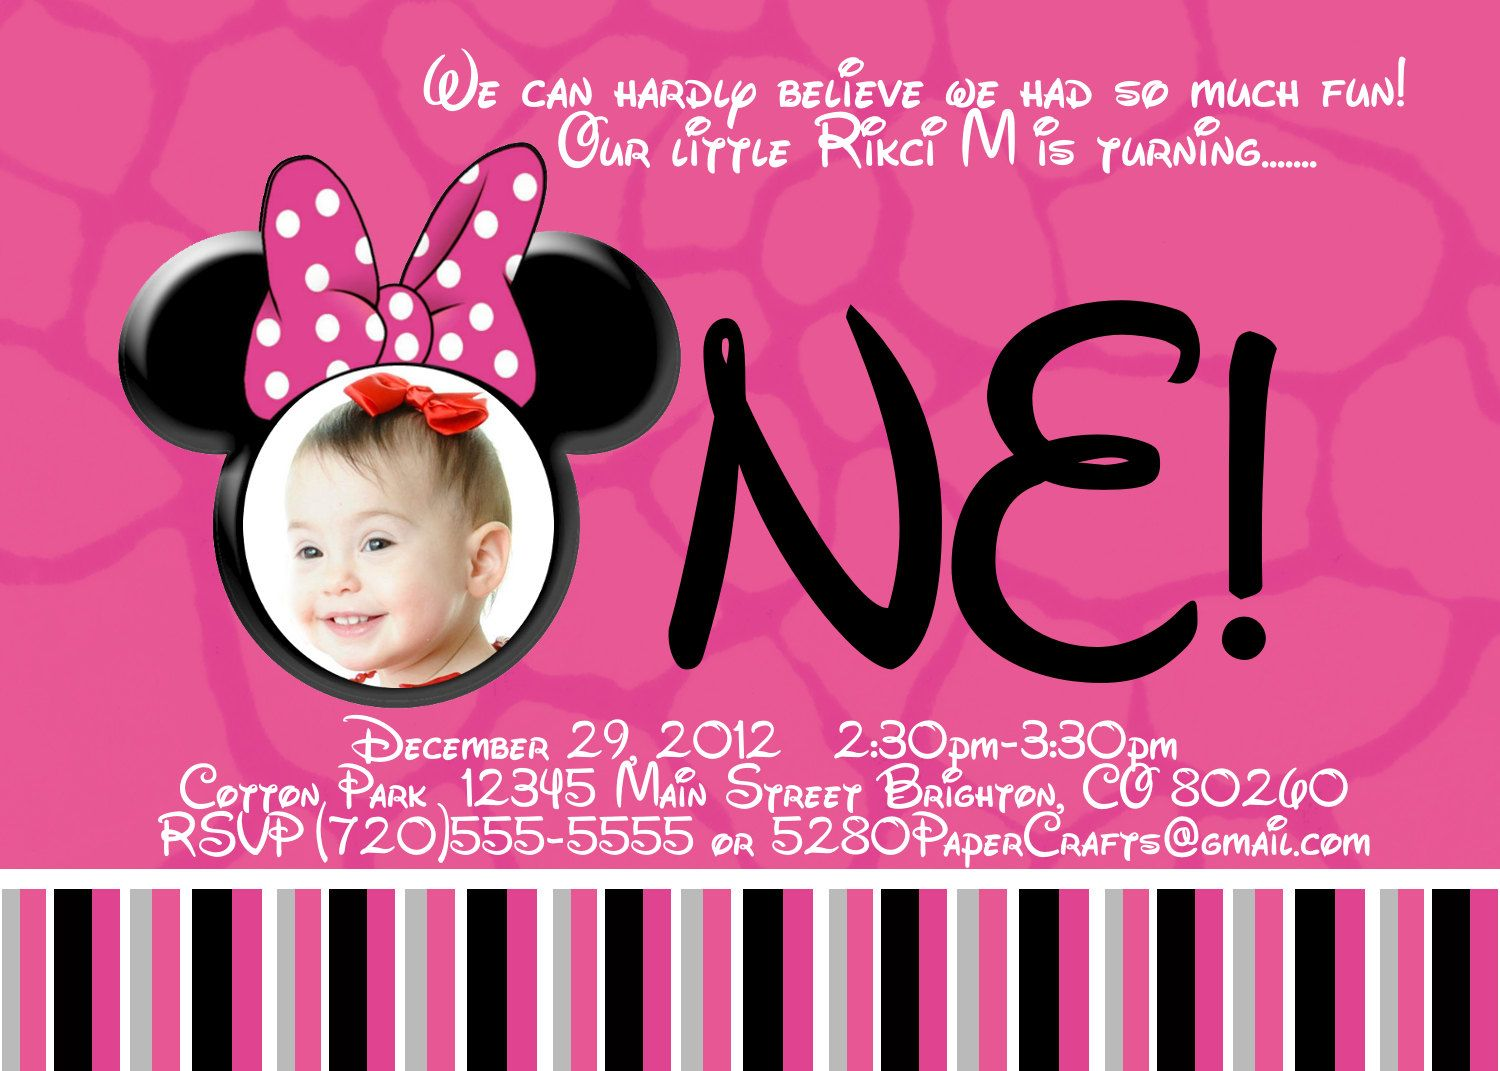 Disney minnie mouse 1st birthday invite diy printing custom wording disney minnie mouse 1st birthday invite diy printing custom wording 500 via etsy filmwisefo Choice Image